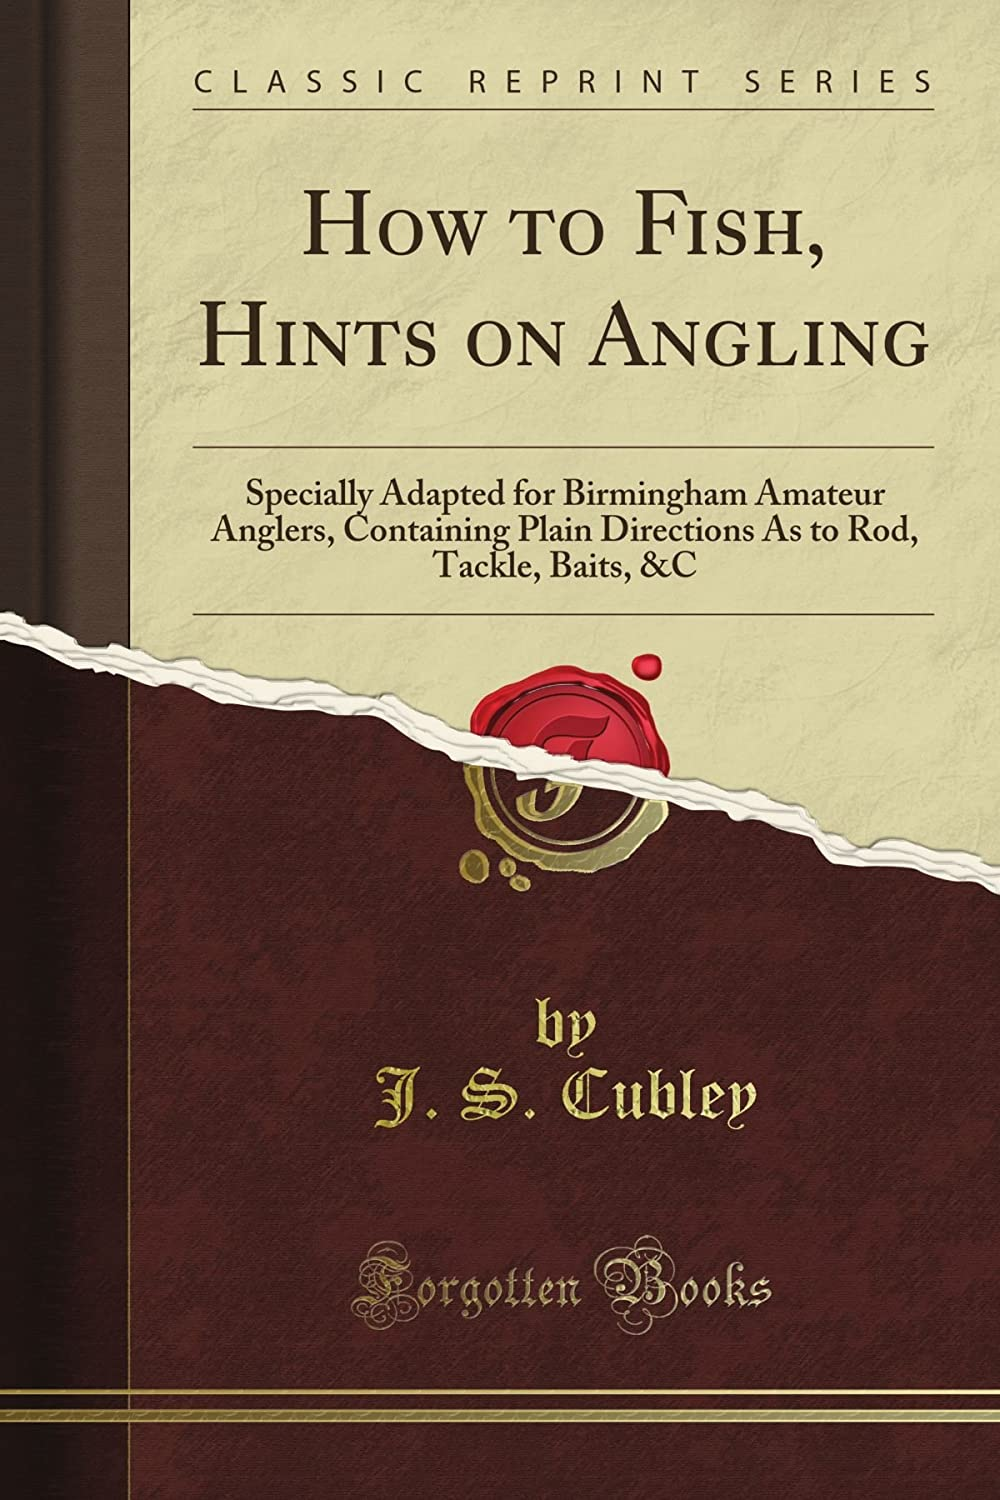 How to Fish, Hints on Angling: Specially Adapted for Birmingham Amateur Anglers, Containing Plain Directions As to Rod, Tackle, Baits, C (Classic Reprint)